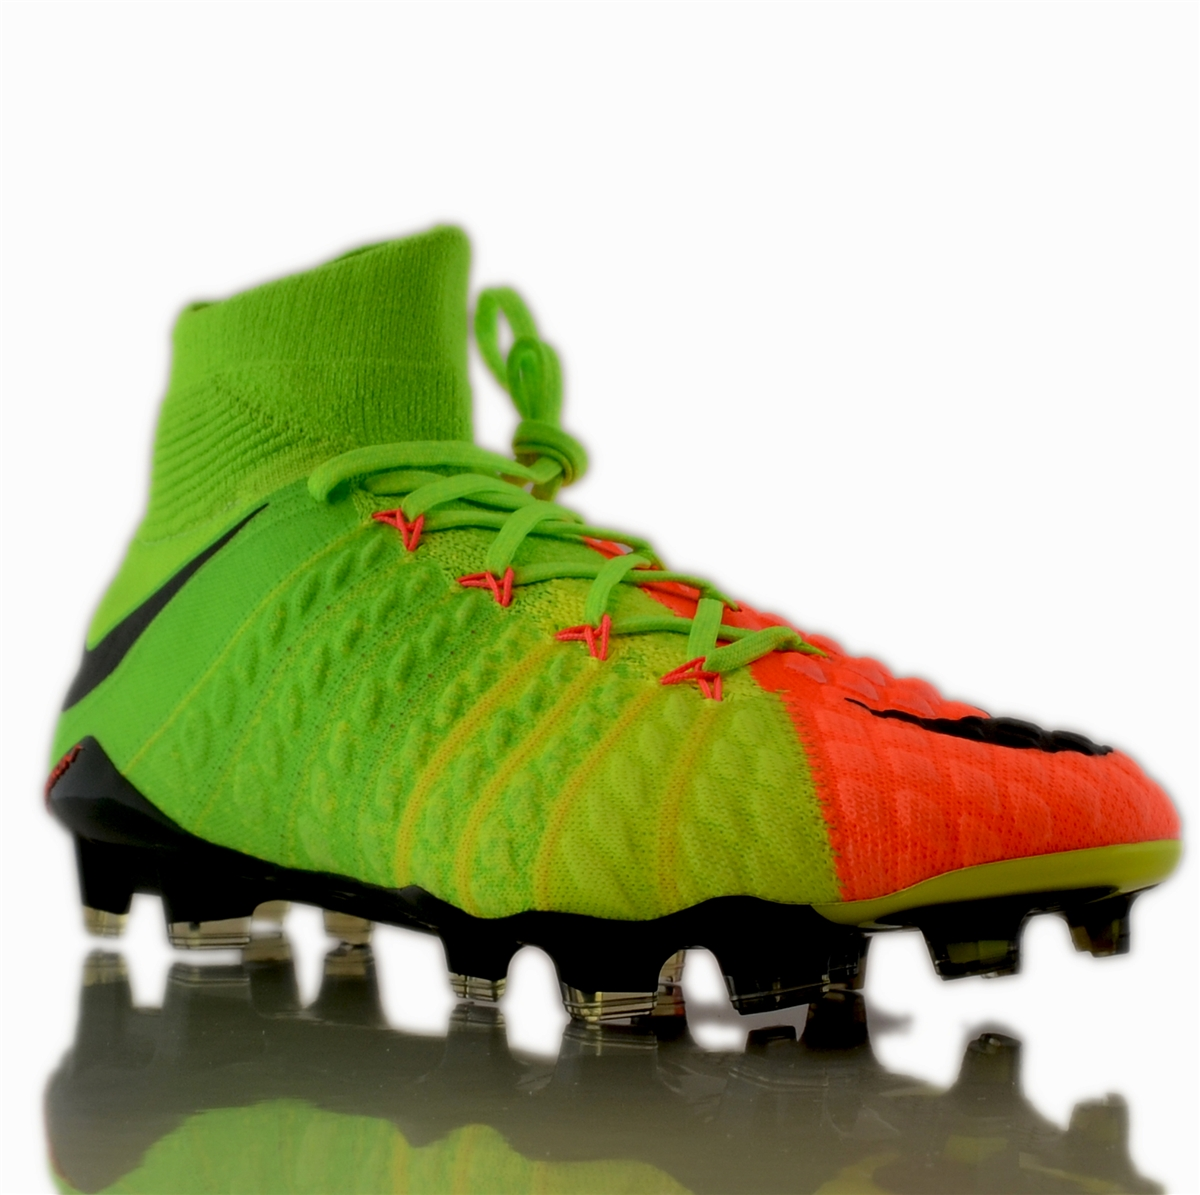 27d01a95e Nike Hypervenom Phantom III DF FG Soccer Cleats (Electric Green ...